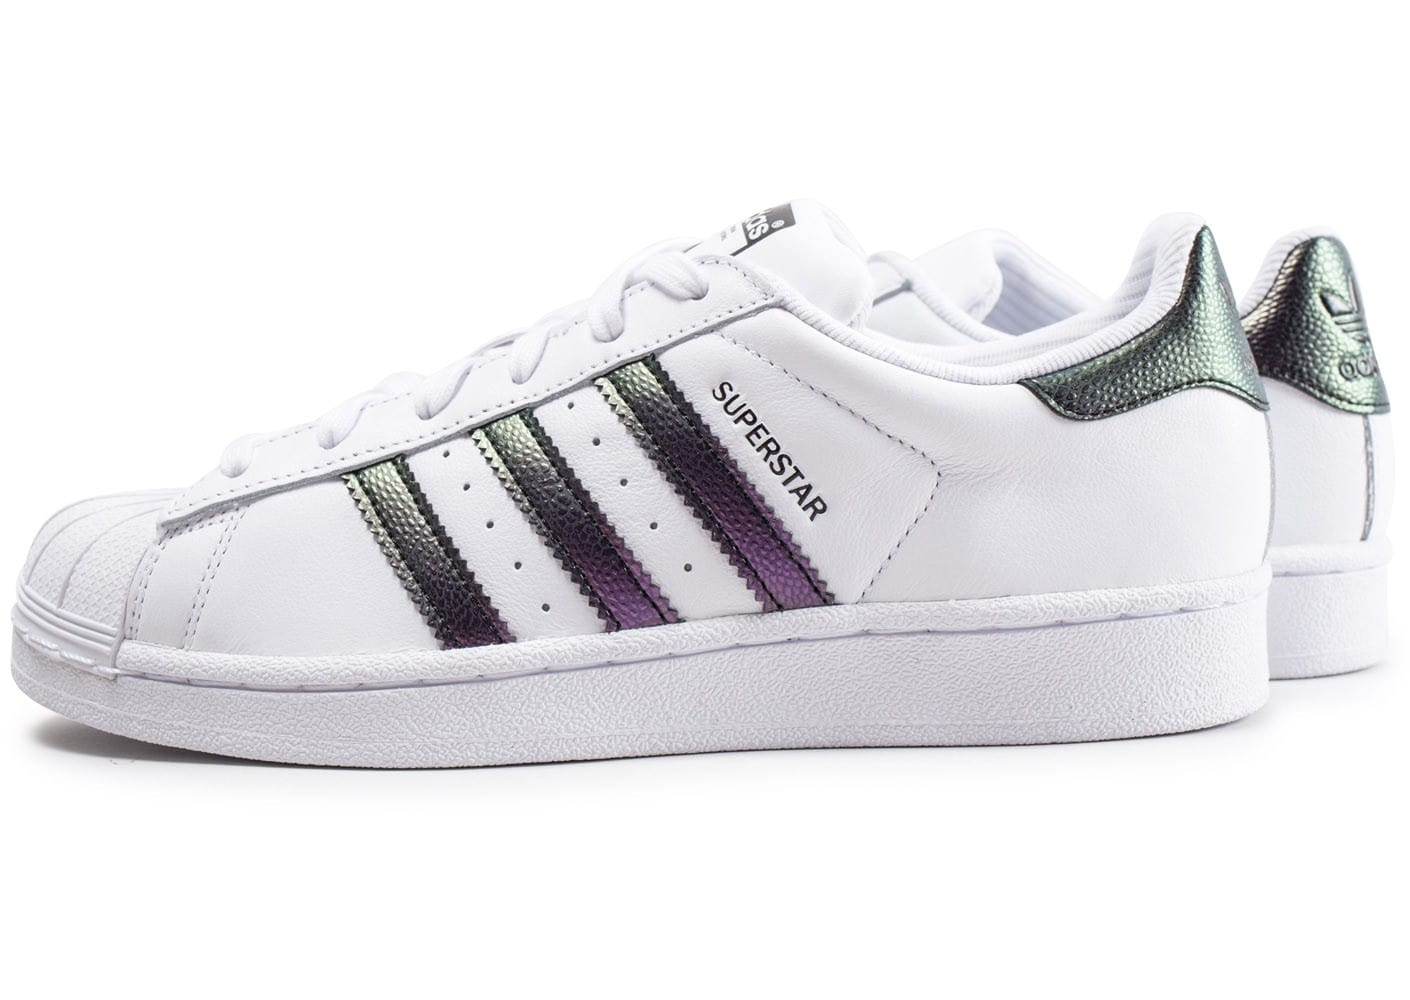 adidas Superstar junior blanche et iridescent